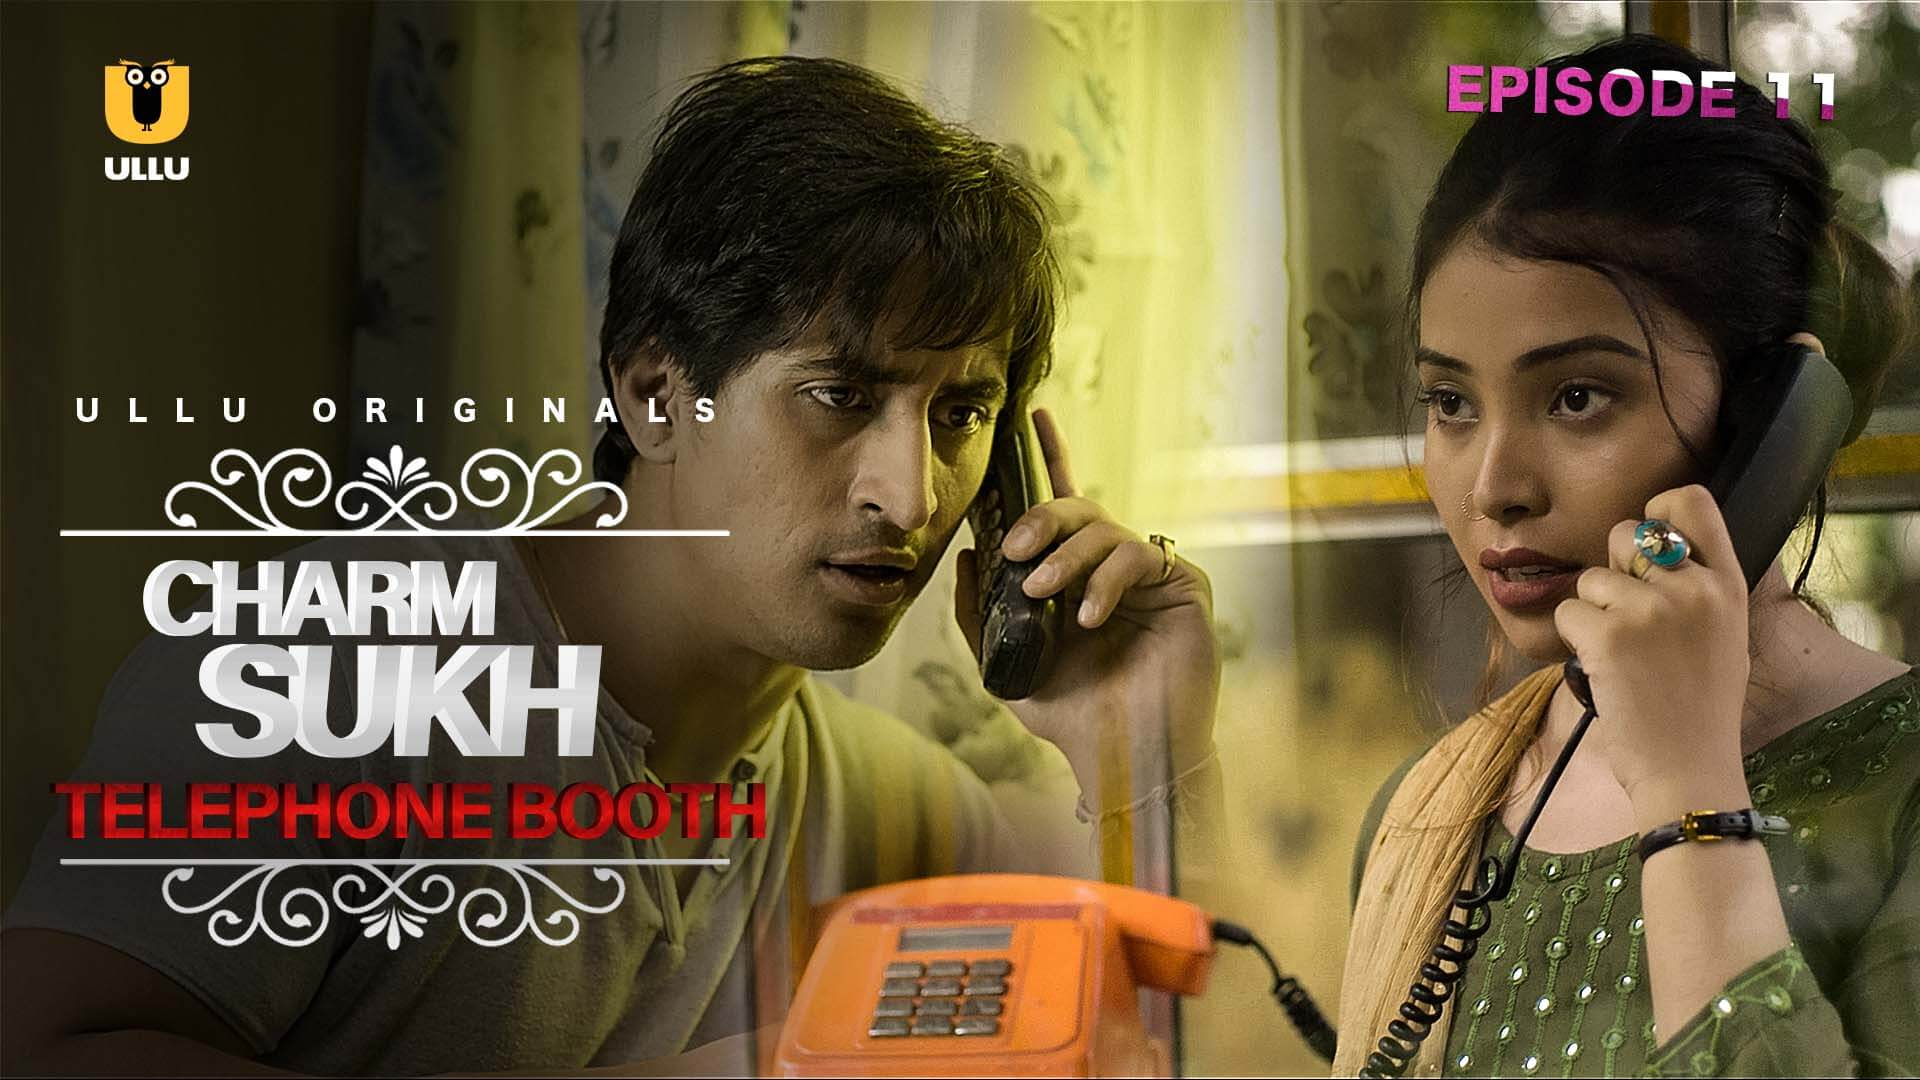 Charmsukh (Telephone Booth) 2019 S01 banner